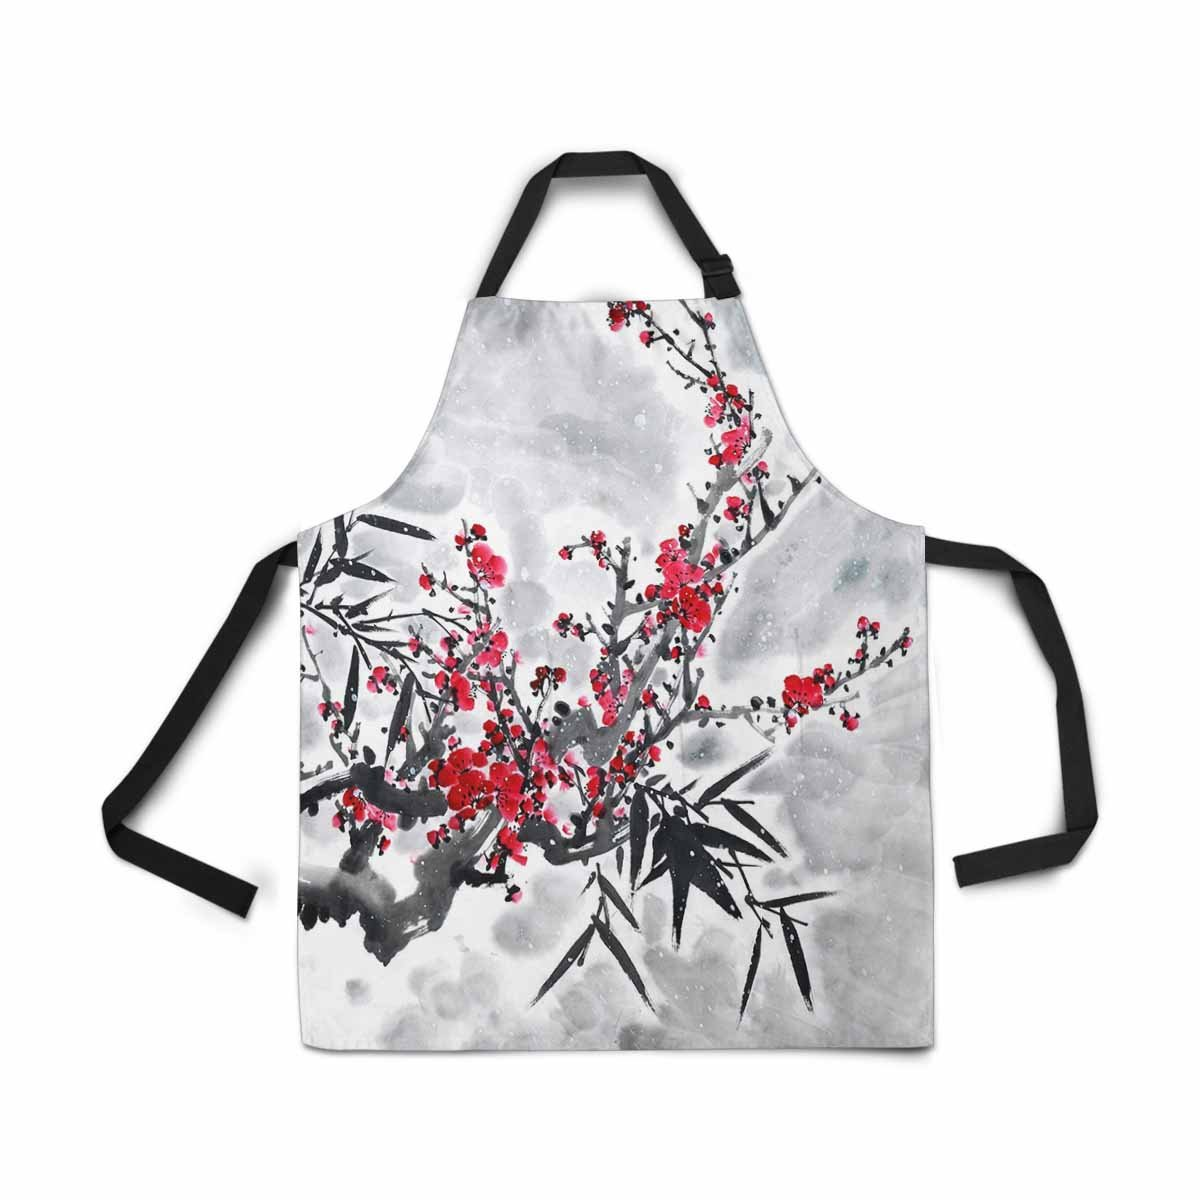 Cartoon Funny Penguin Bird Four Seasons Icons Novelty Kitchen Apron for Cooking Baking Gardening Pet Grooming Cleaning InterestPrint Adjustable Bib Apron for Women Men Girls Chef with Pockets